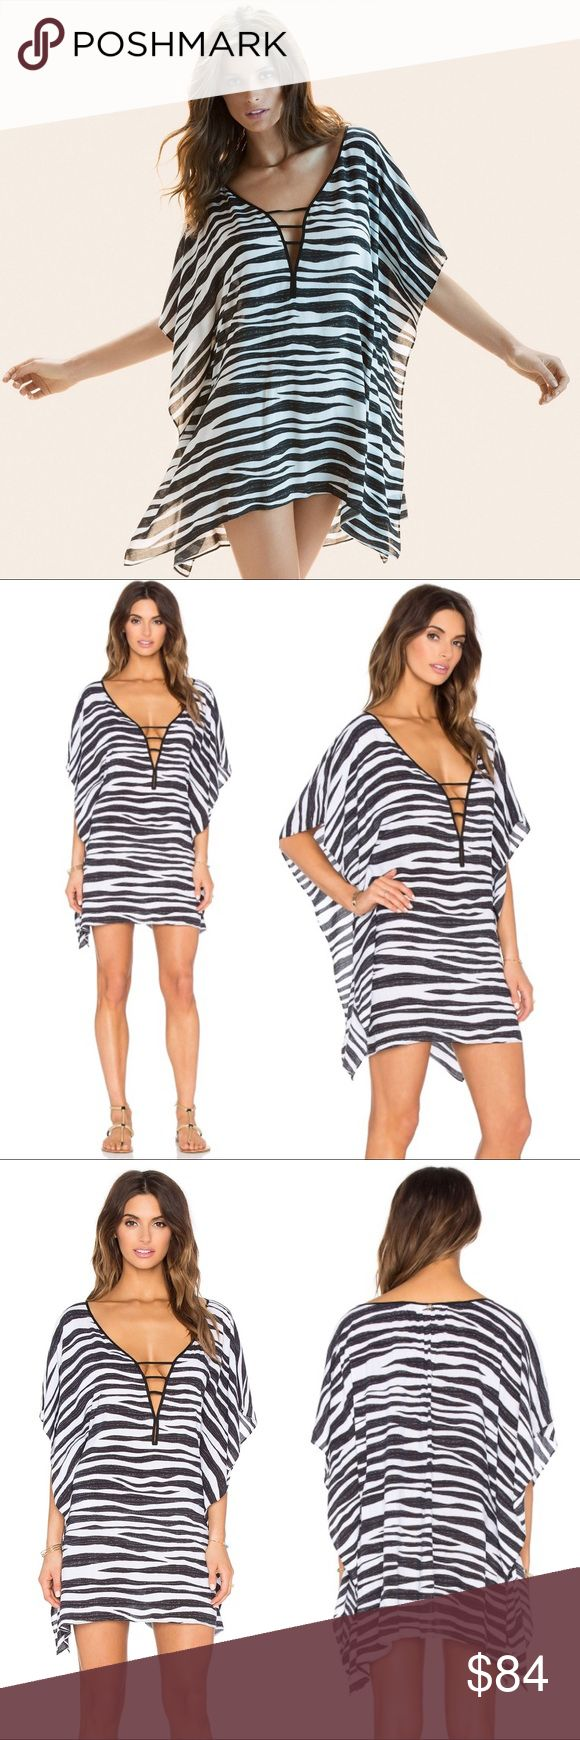 """👣🆕 Vix ✦ Camila Kimono Caftan ✦ Zebra Print Vix Camila Caftan in Zebra Print Brand New with Tags in Manufacturer's Packaging  👣👣👣👣👣👣👣👣👣👣👣👣  Head from beach to boardwalk in this chic zebra striped beach dress designed with a plunging neckline and flowy kimono sleeves. Luxurious elegance! Pair with bare feet or with your sexiest gladiators.   Approximate Measurements:  Length: 32"""" Fabrication: 100% Rayon/Viscose   👣👣👣👣👣👣👣👣👣👣👣👣  ✗ Drama ✗ Trades ⚡️Fast Shipper ☆☆☆☆☆ 5…"""